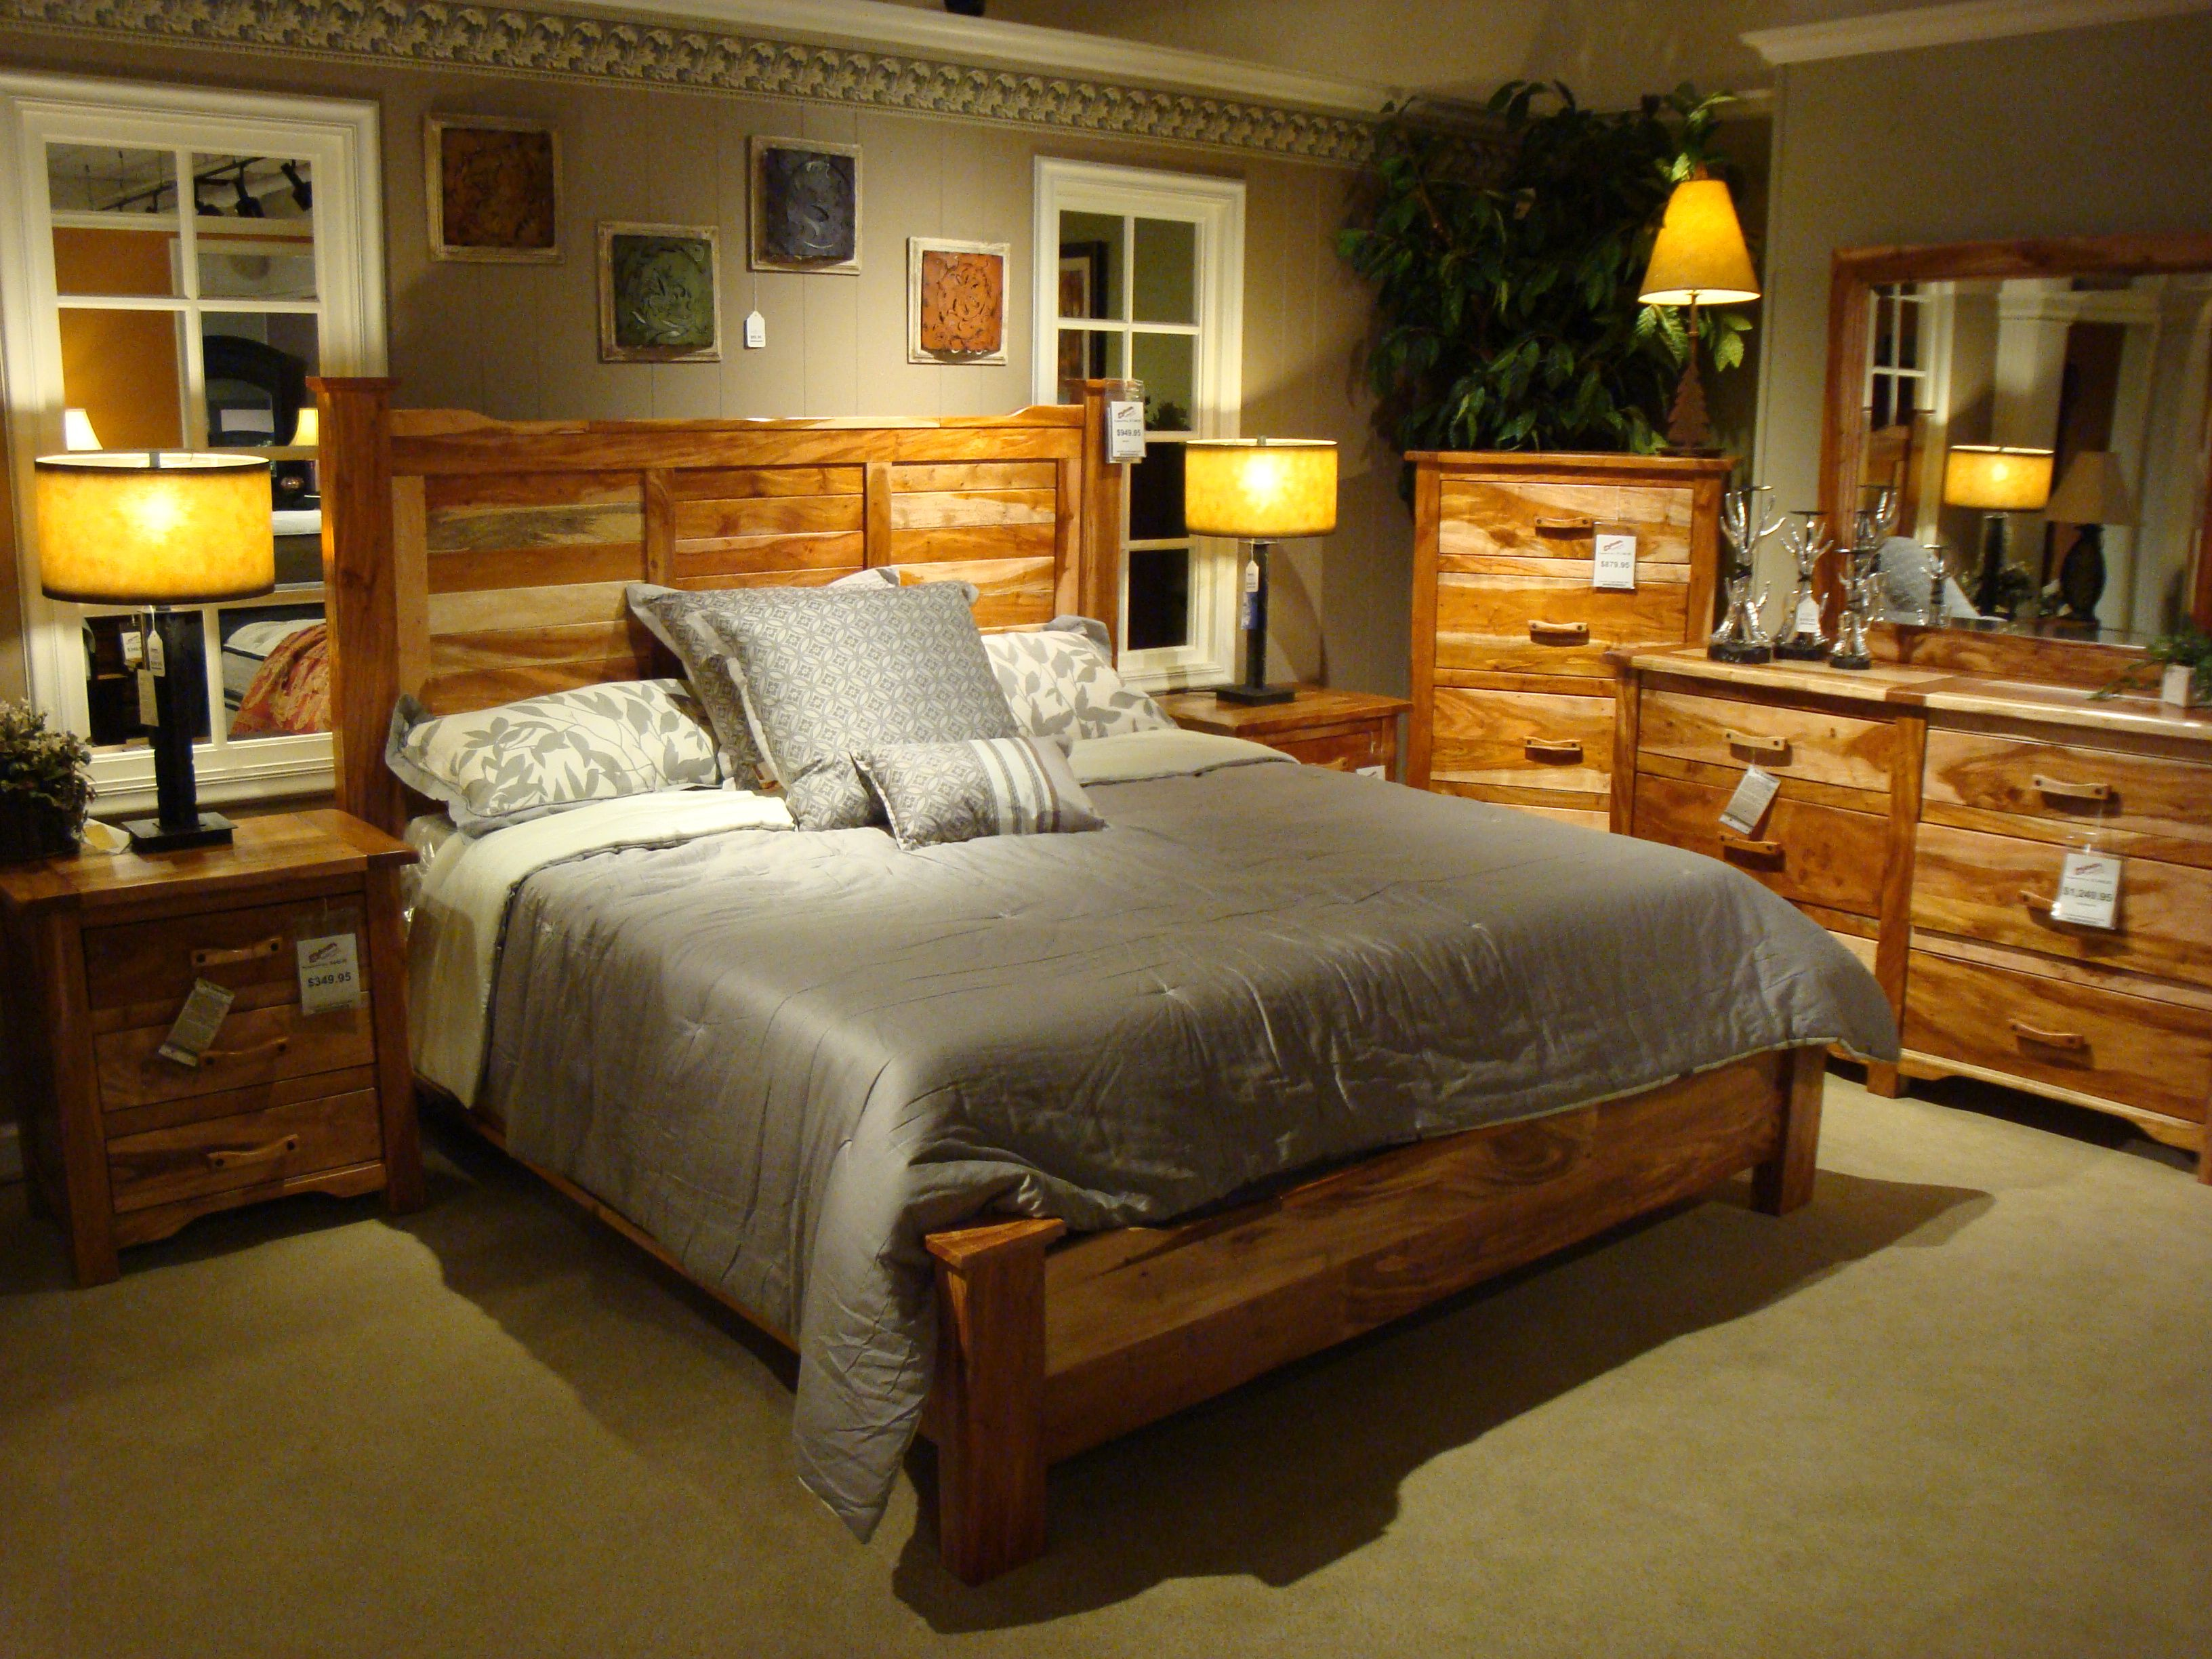 dorm set size doherty weathered white twin cabinets house wood shelves make solid headboards tall wicker design home and sets with wooden room real lights storage of bedroom full maple queen king pspindy padded headboard black bookcase bookshelf ikea